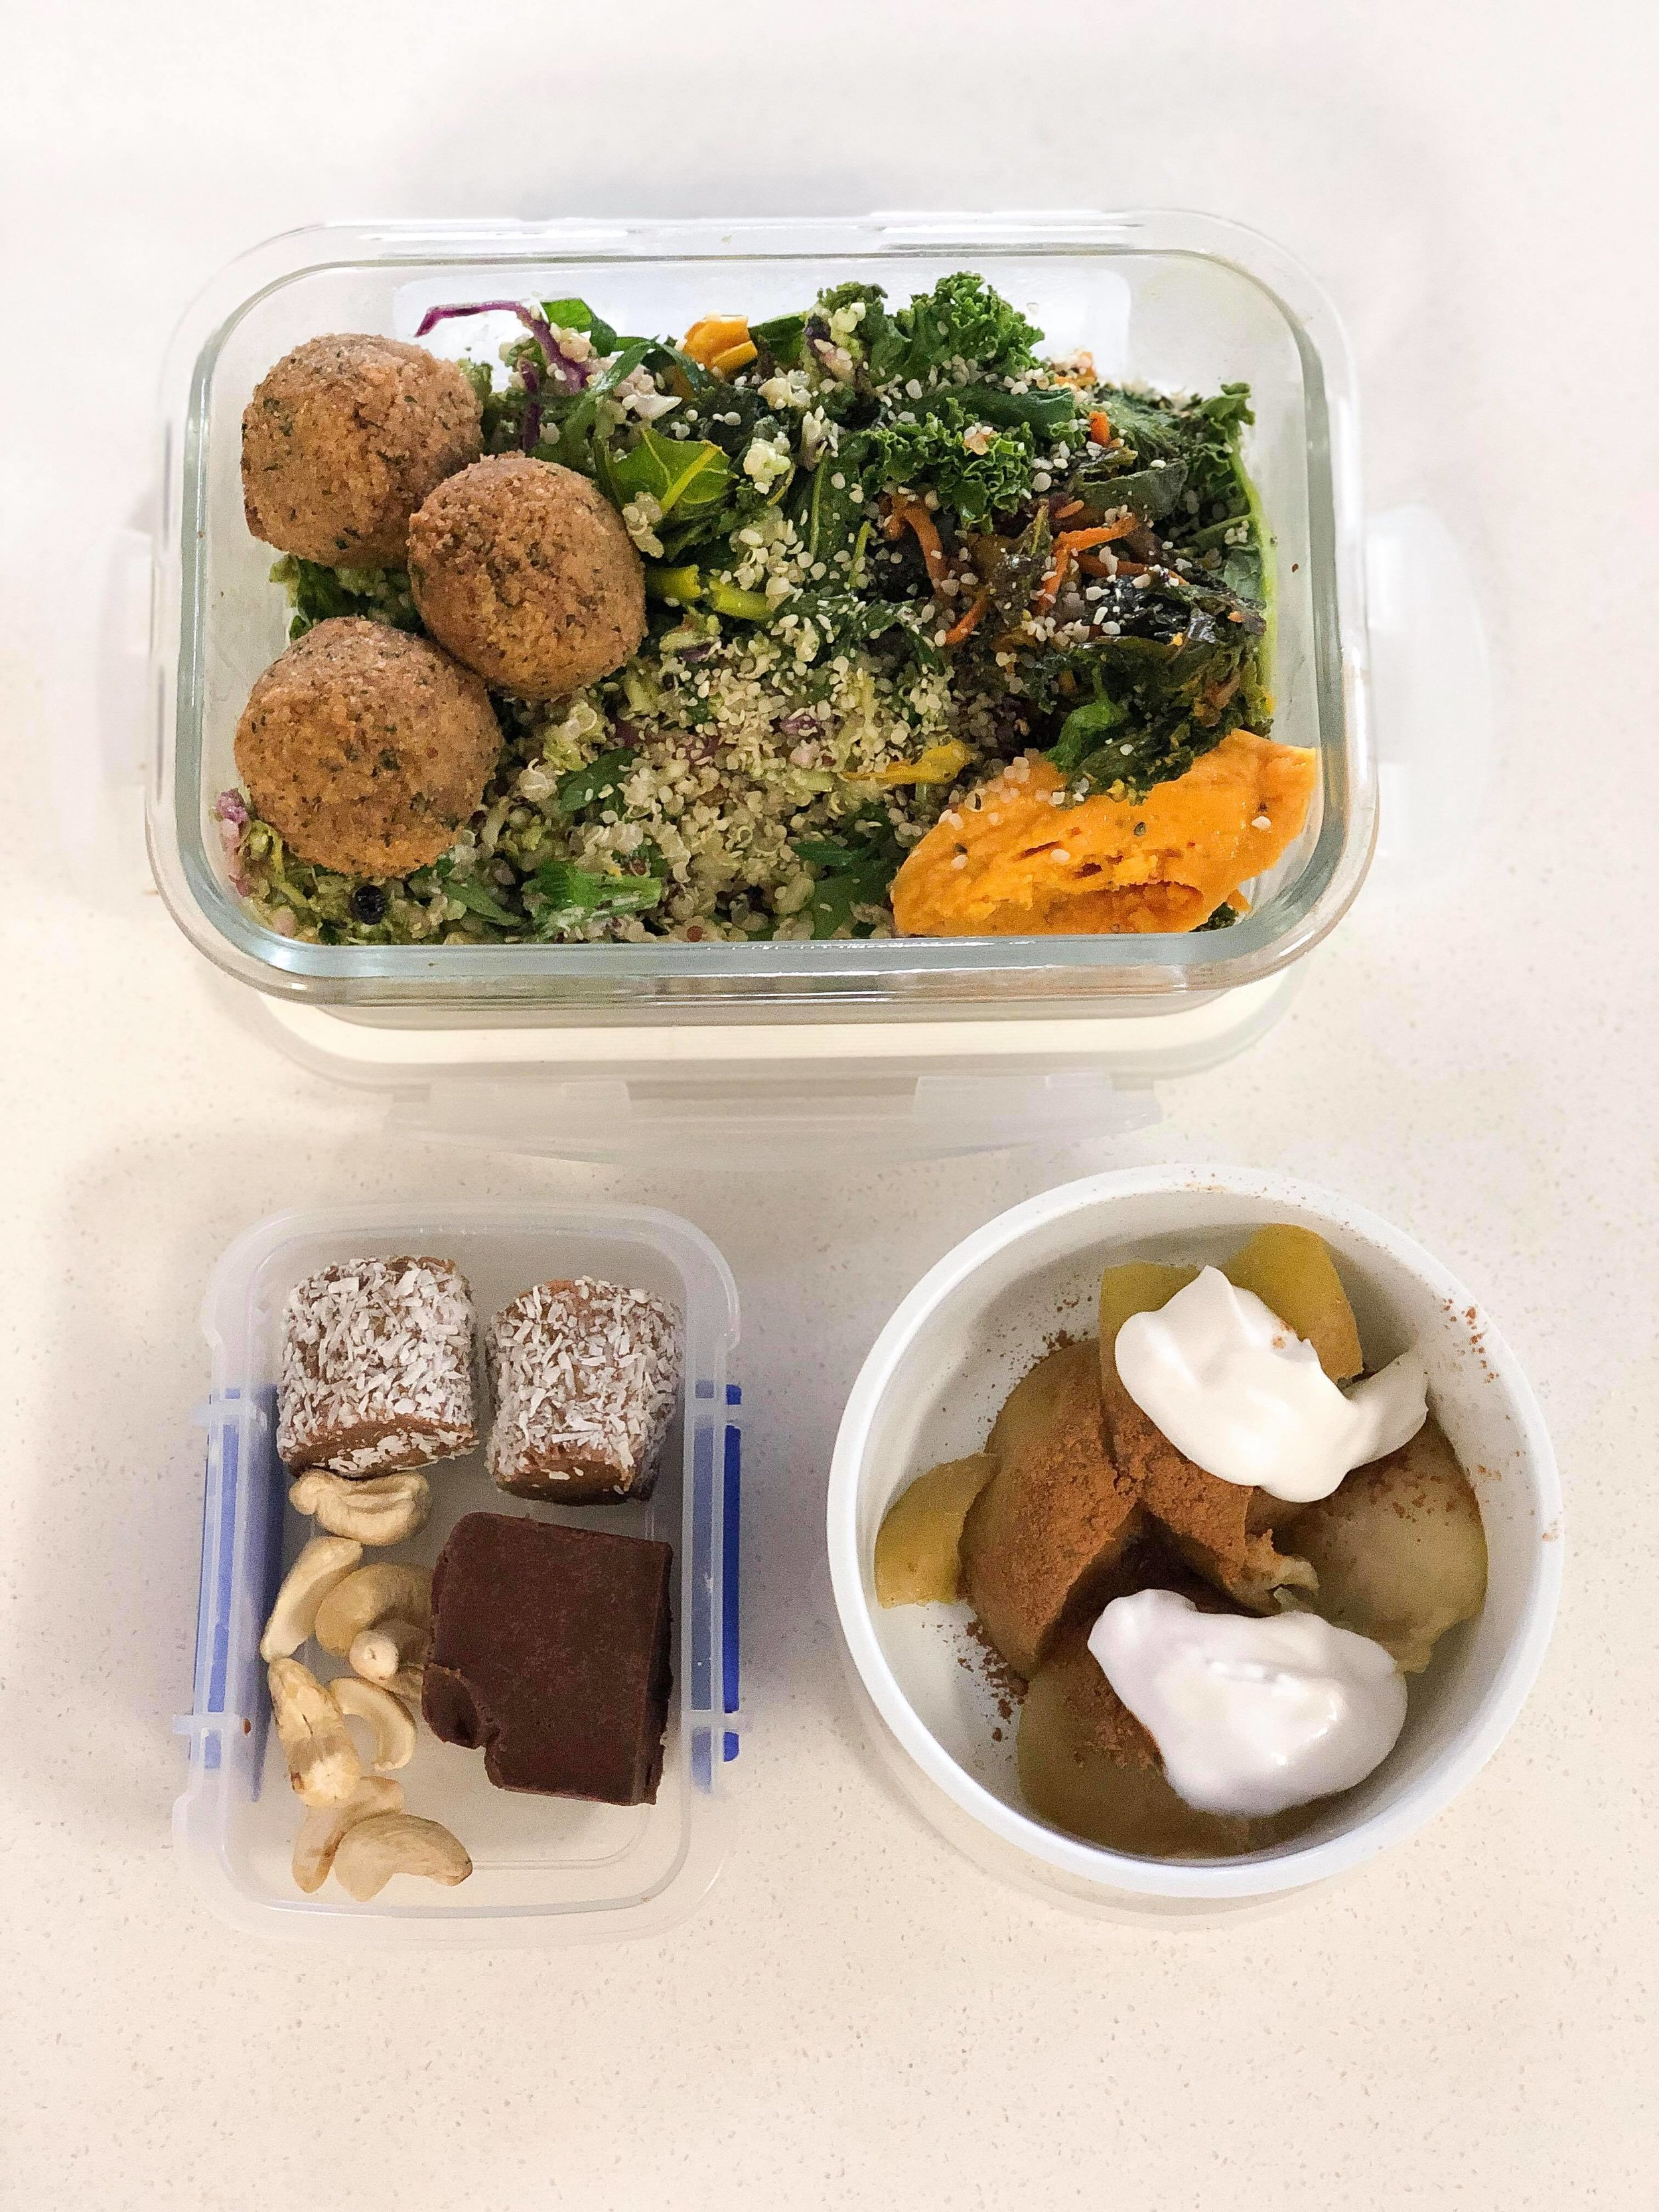 Healthy Lunch Box - 1. Hot Lunch. I have been making my Gut Bowl most days as my main meal. Doing that and adding a protein source (pictured is falafel), some gut lovin' products (here is My Hemple Hemp Seeds) and a fat source (I have carrot hummus in the bottom right hand of the container).2. Far left is my little snack box. Here I have some raw unsalted cashews, date and coconut rolls (health food store) and a slice of homemade Low Carb Choc Fudge).3. Far right is my stewed apple combo. I stew an apple in boiling water until soft. Then I cut away the core, add some ground cinnamon and top with Coconut Yoghurt.4. A few things that are missing.-I pack some protein powder (Prana Coconut Milk) to have with water during the day.-I make a coffee with me from Pod and Parcel and add some Bonsoy soy milk. When I get to work I'll warm this up and add some hot water.-My breakfast, dinner and pre-dinner snack are not pictured.